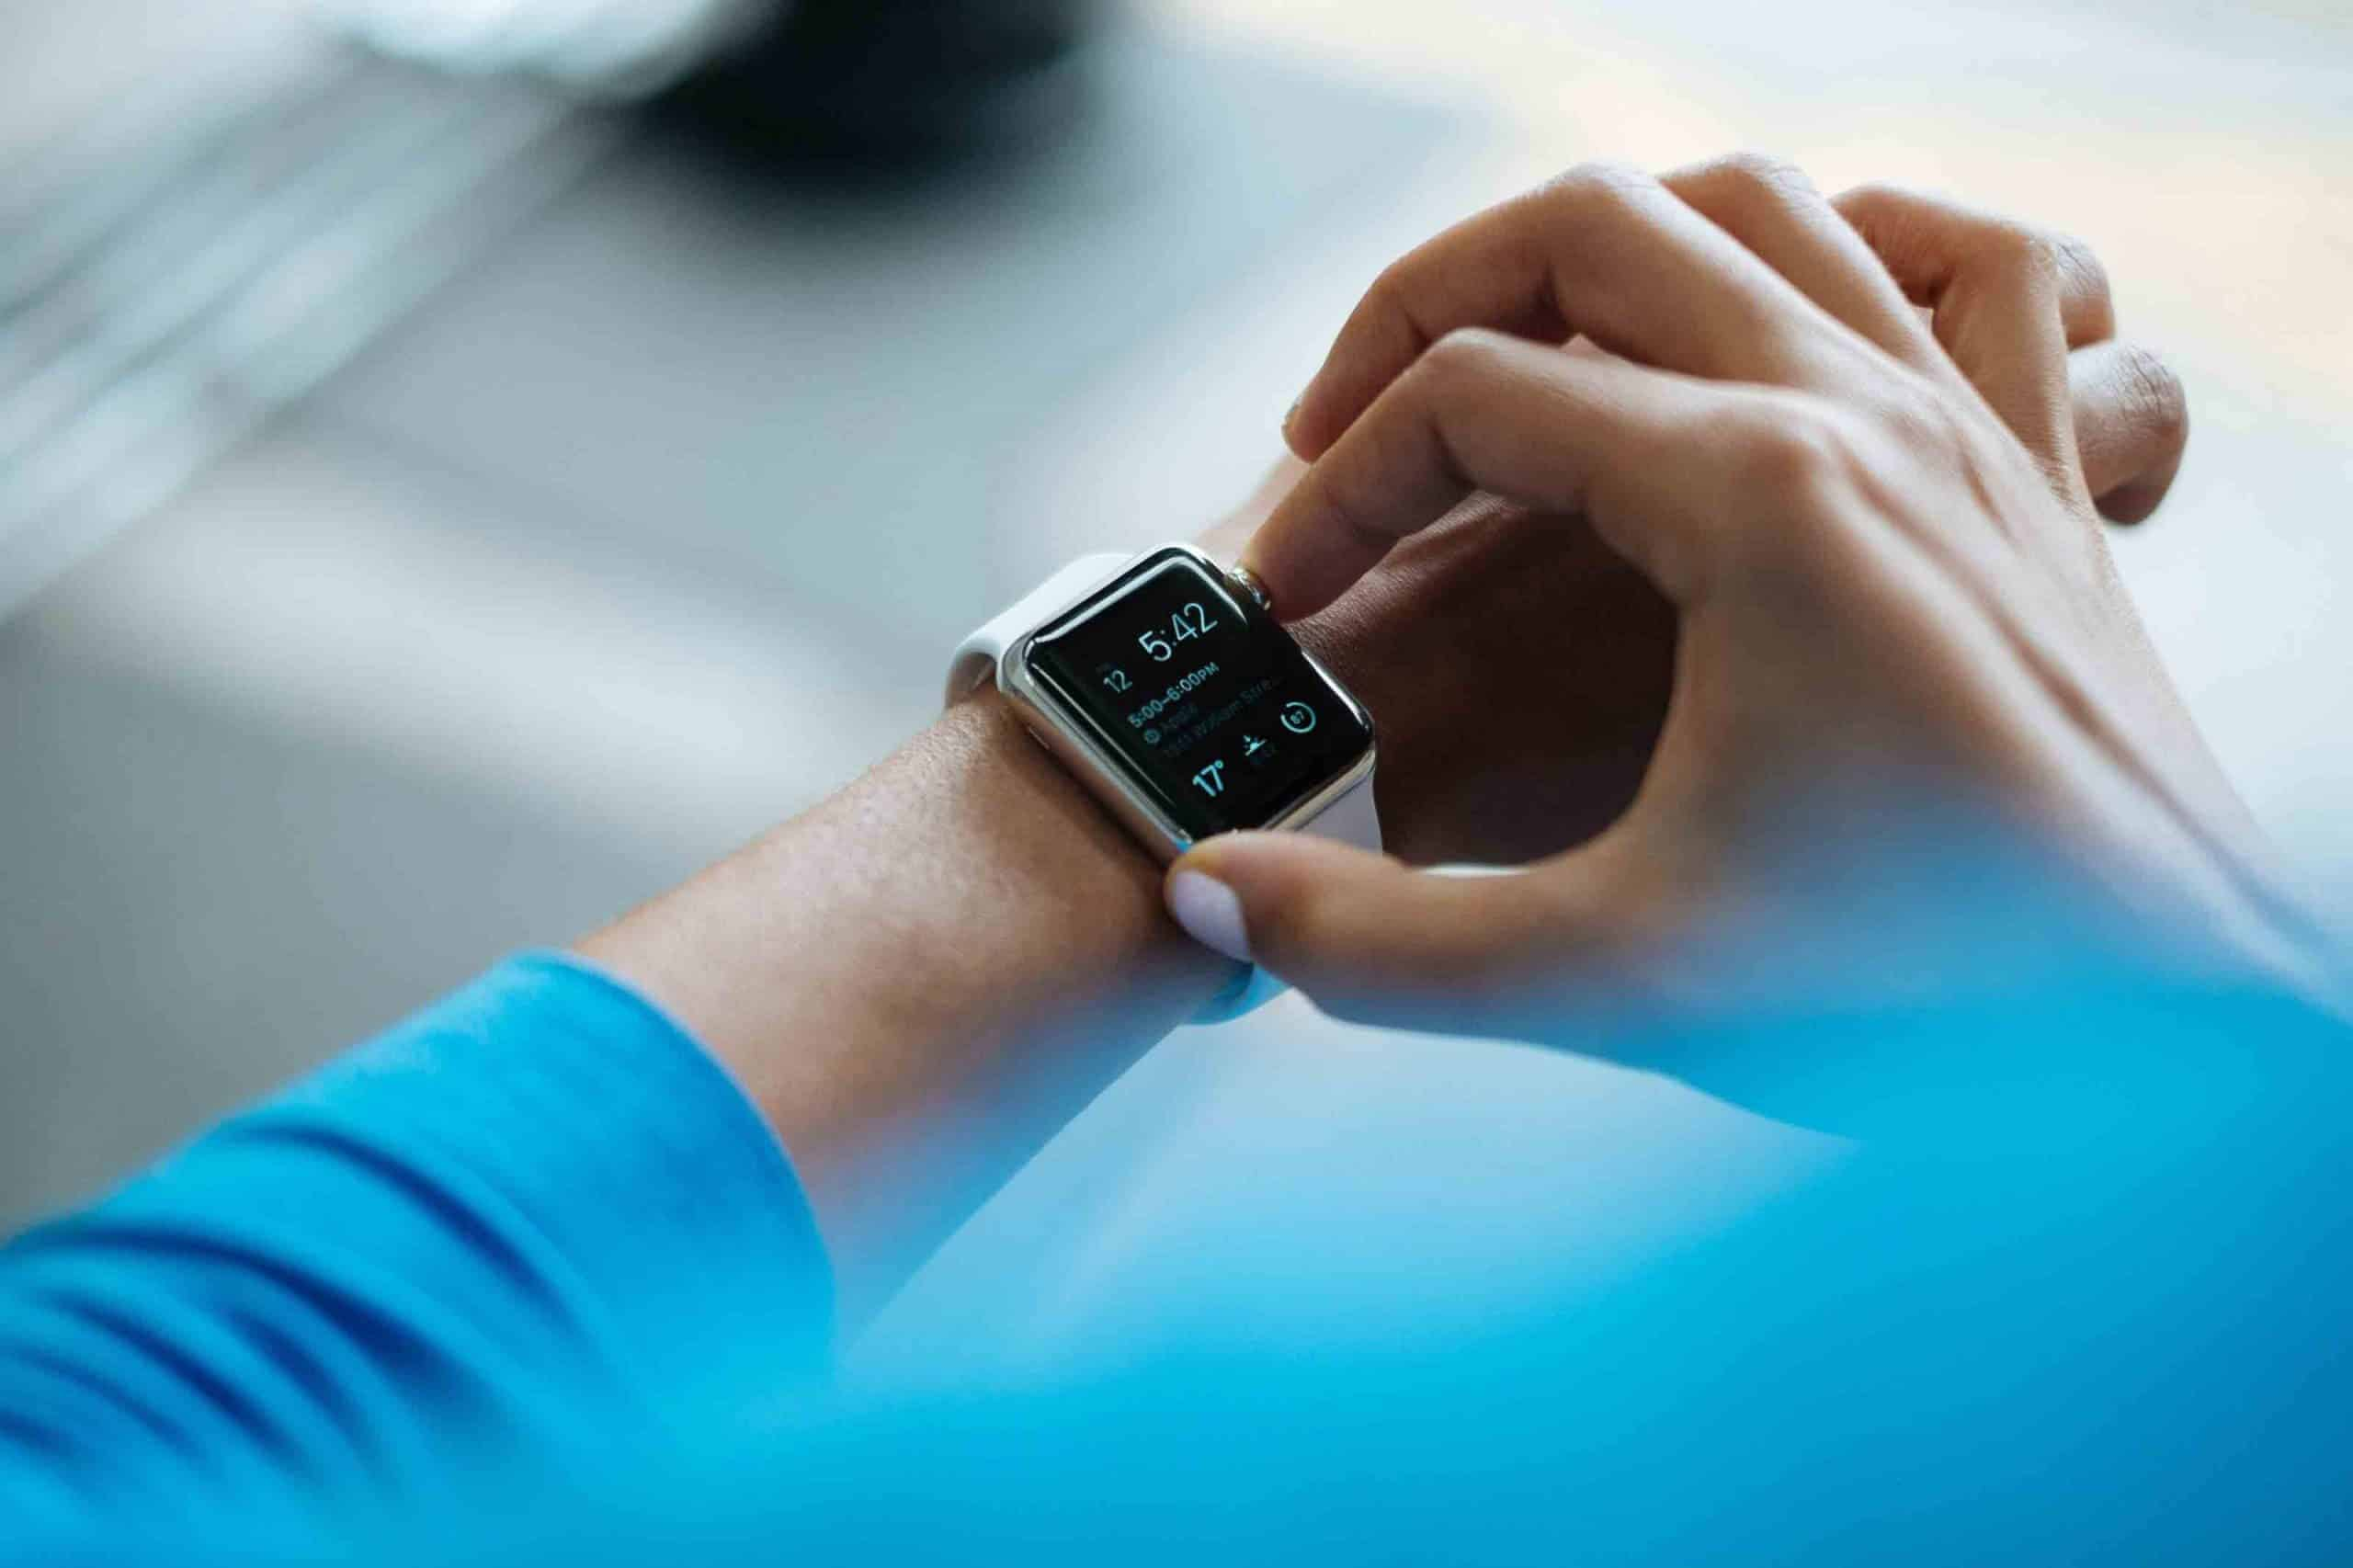 wearables devices scaled 1